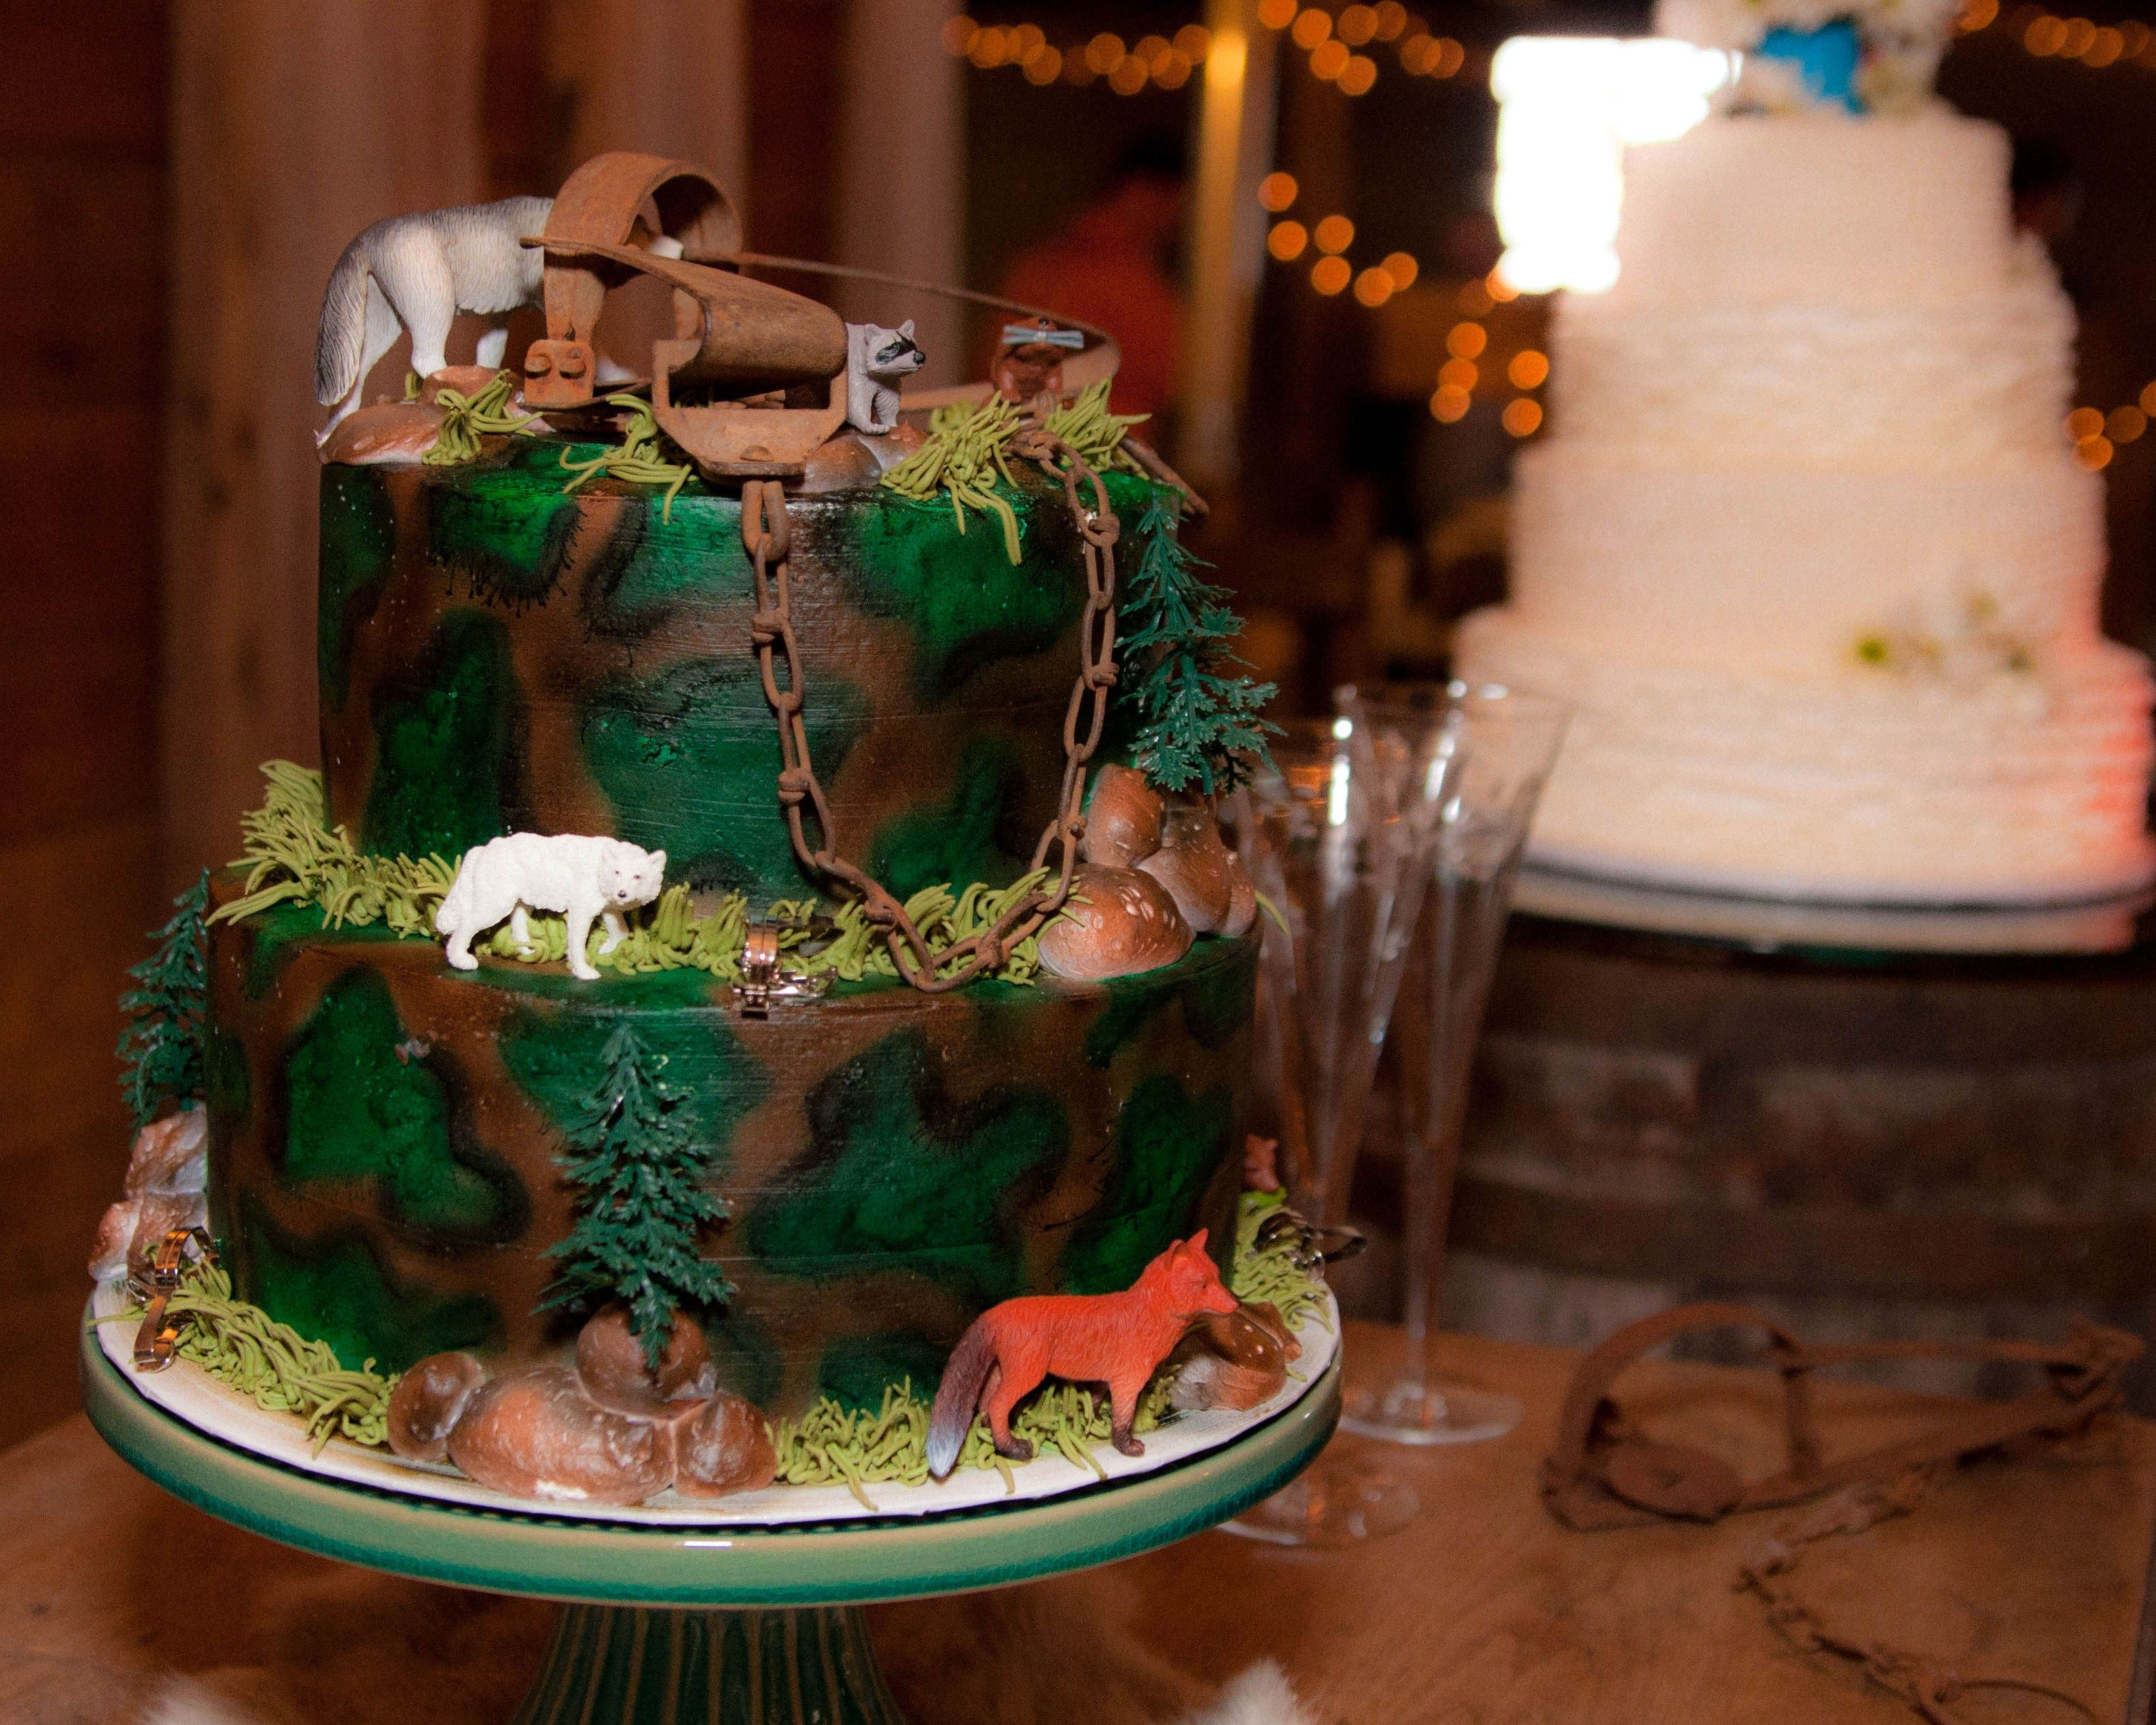 CAMO Mountain mantrapper cake for the groom Cake Pinterest